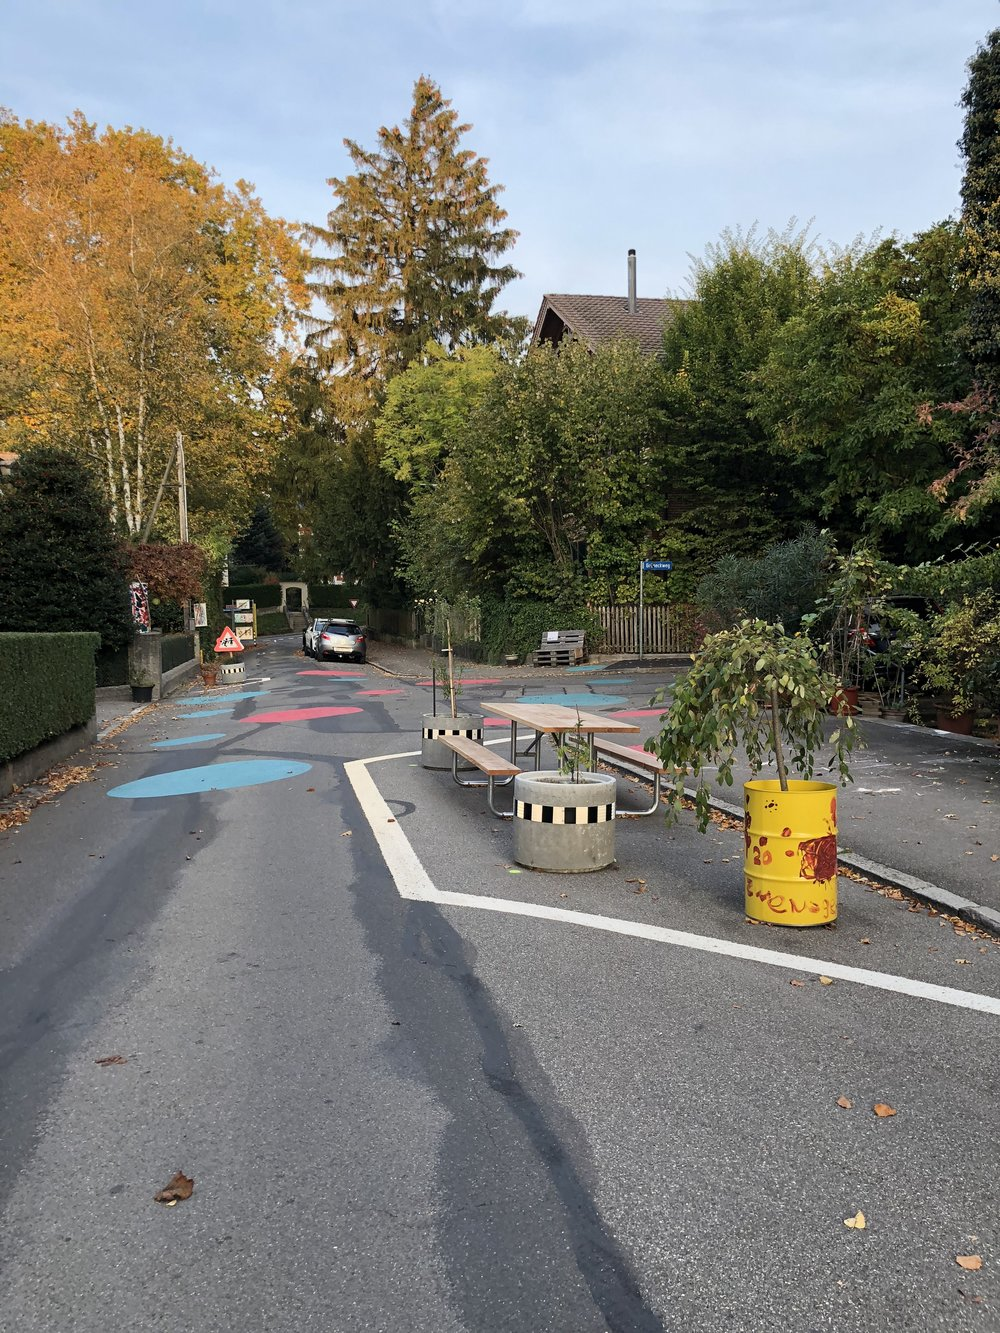 Children design the 20 km/h zone in front of their homes in a residential area.